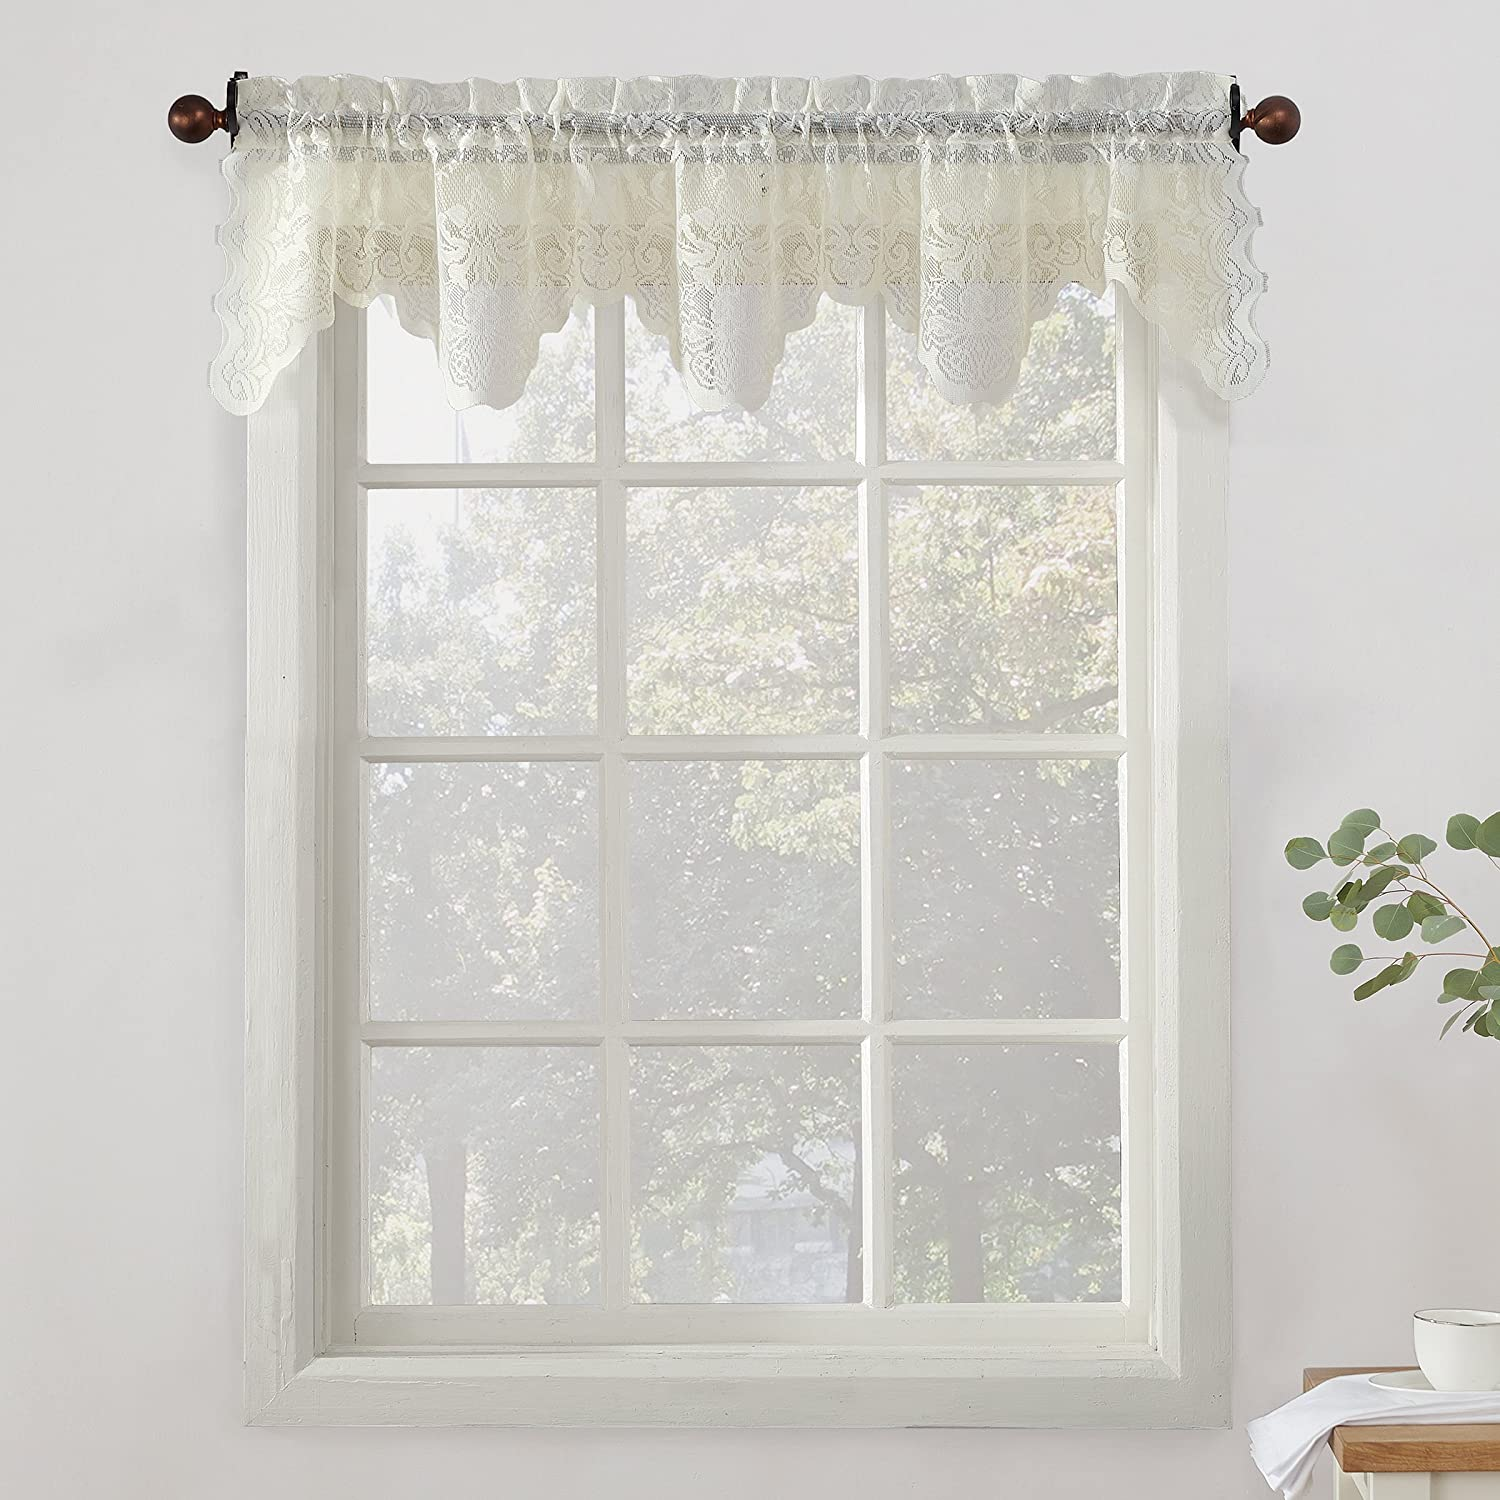 918 alison floral lace sheer kitchen curtain valance 58 x 14 ivory home kitchen